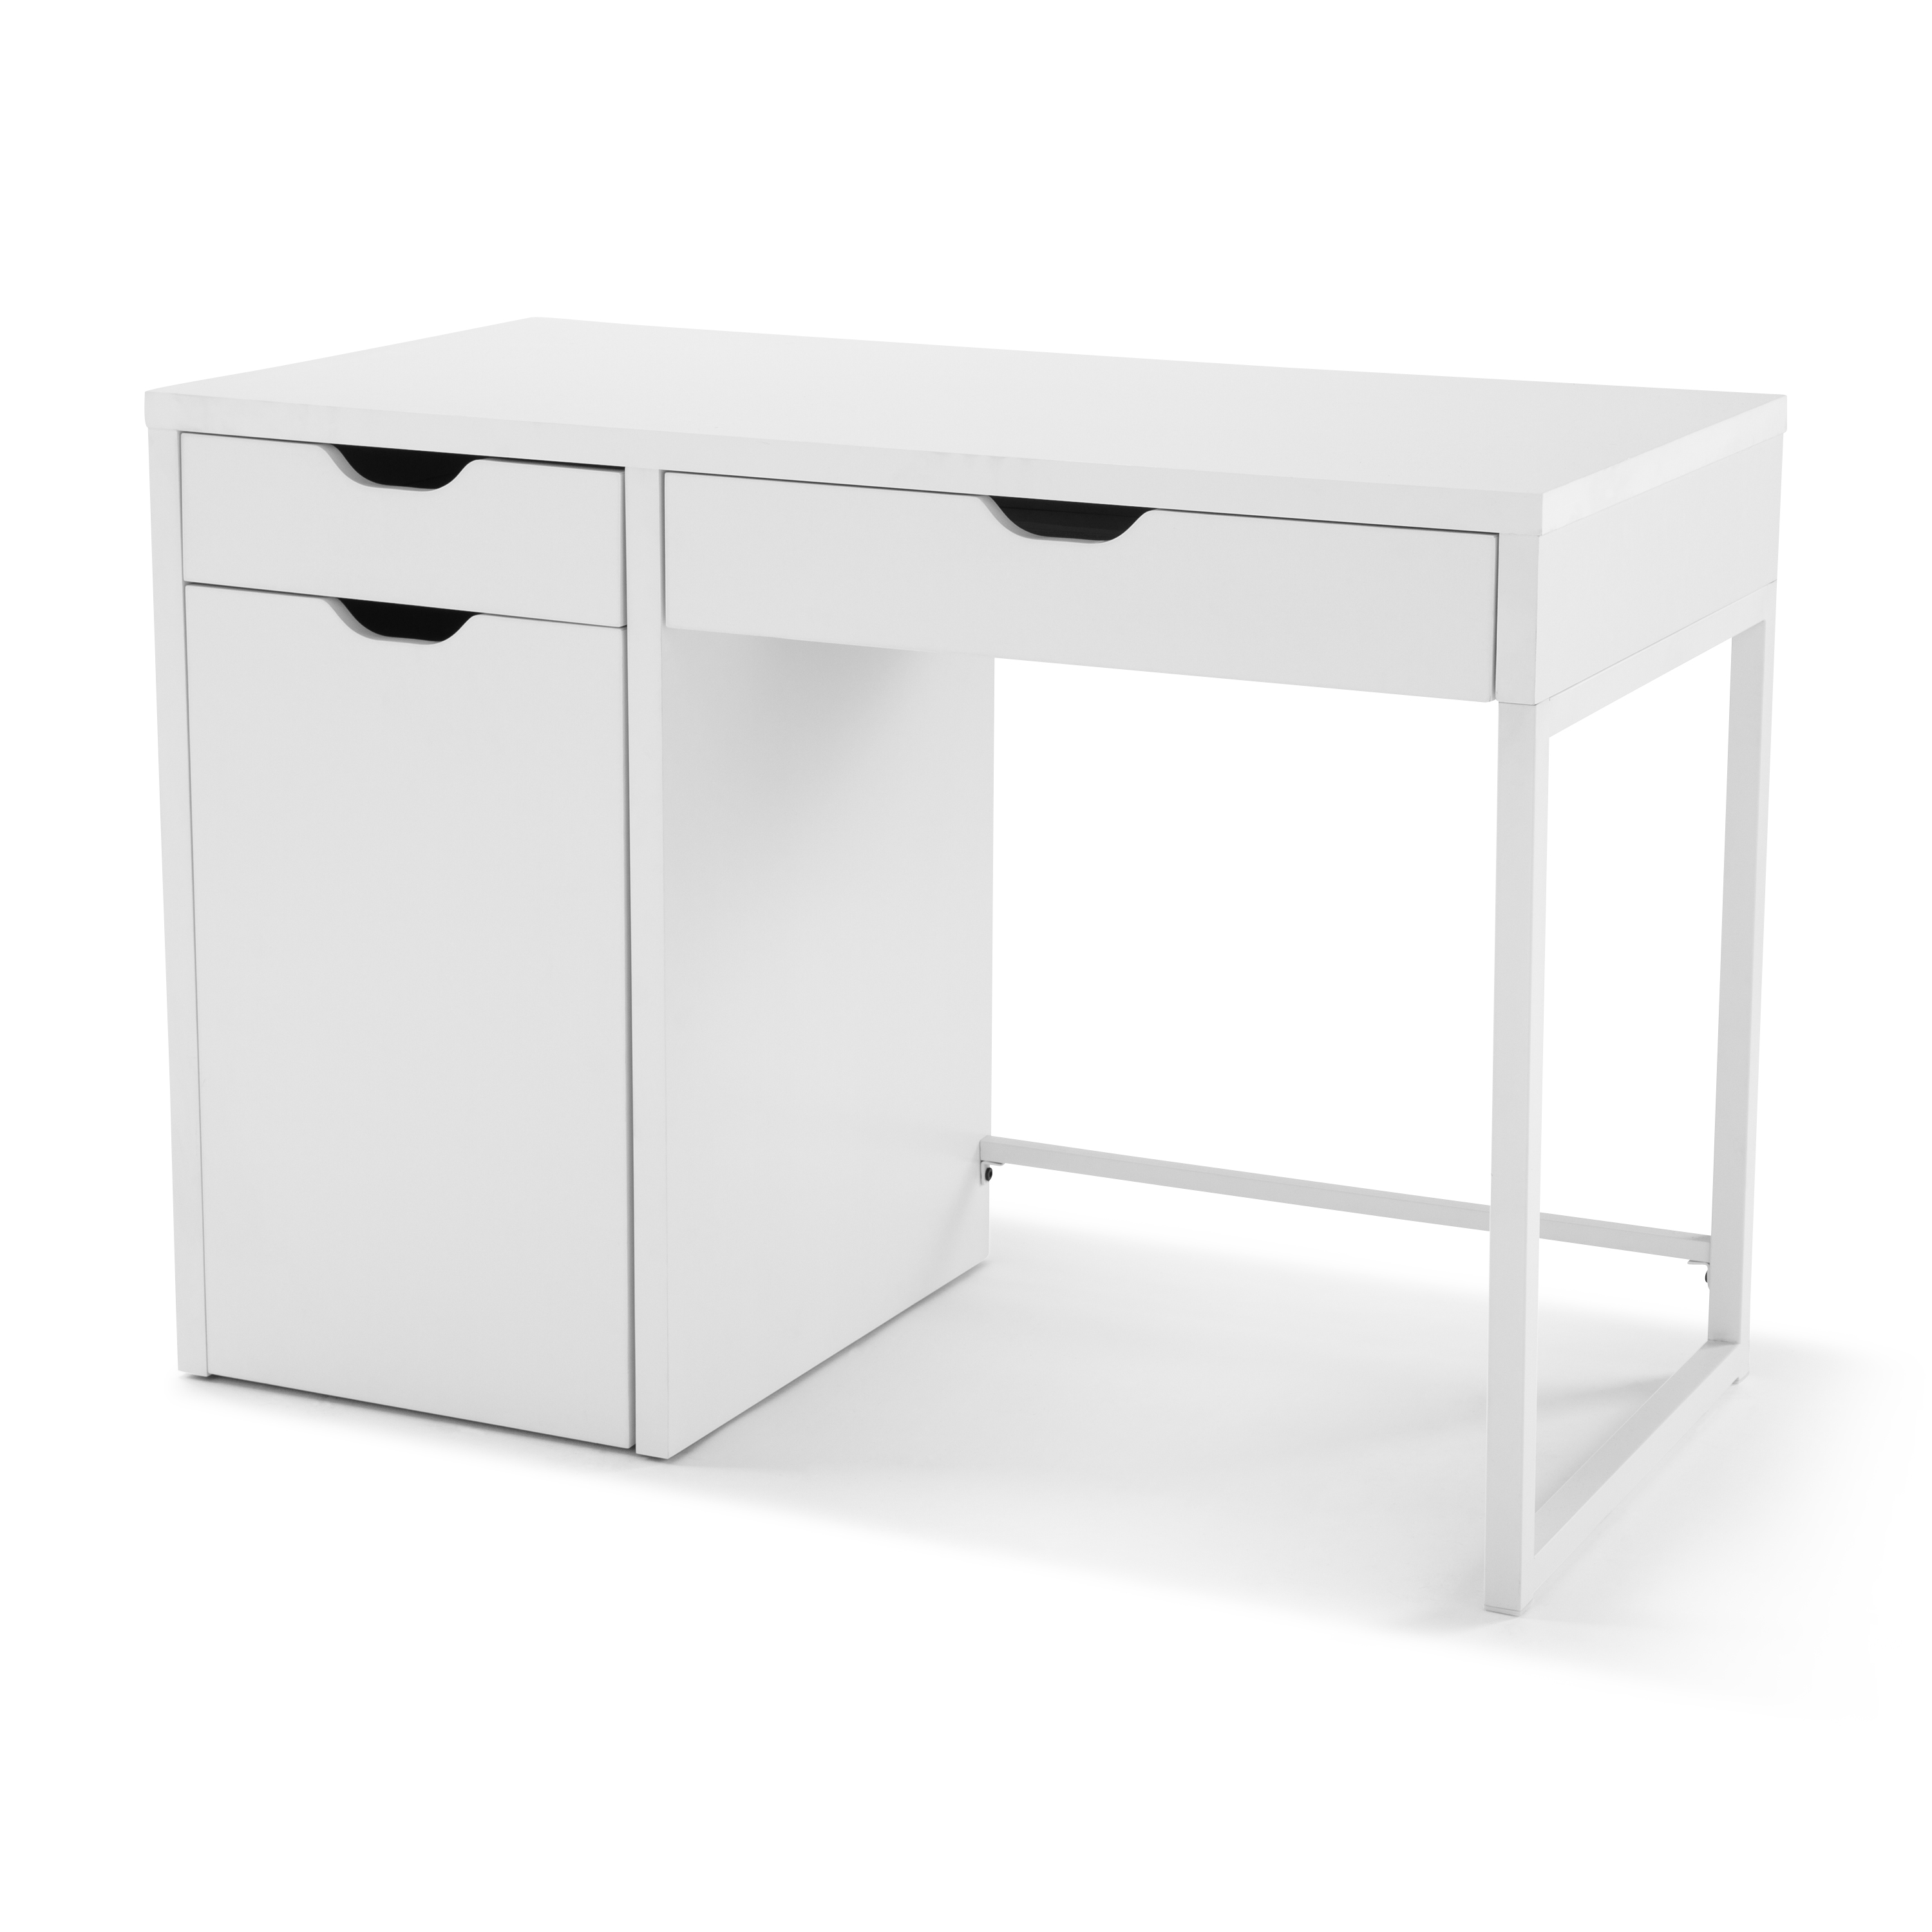 Mainstays Perkins Desk With Metal Frame With Storage For File Cabinet,  Multiple Colors